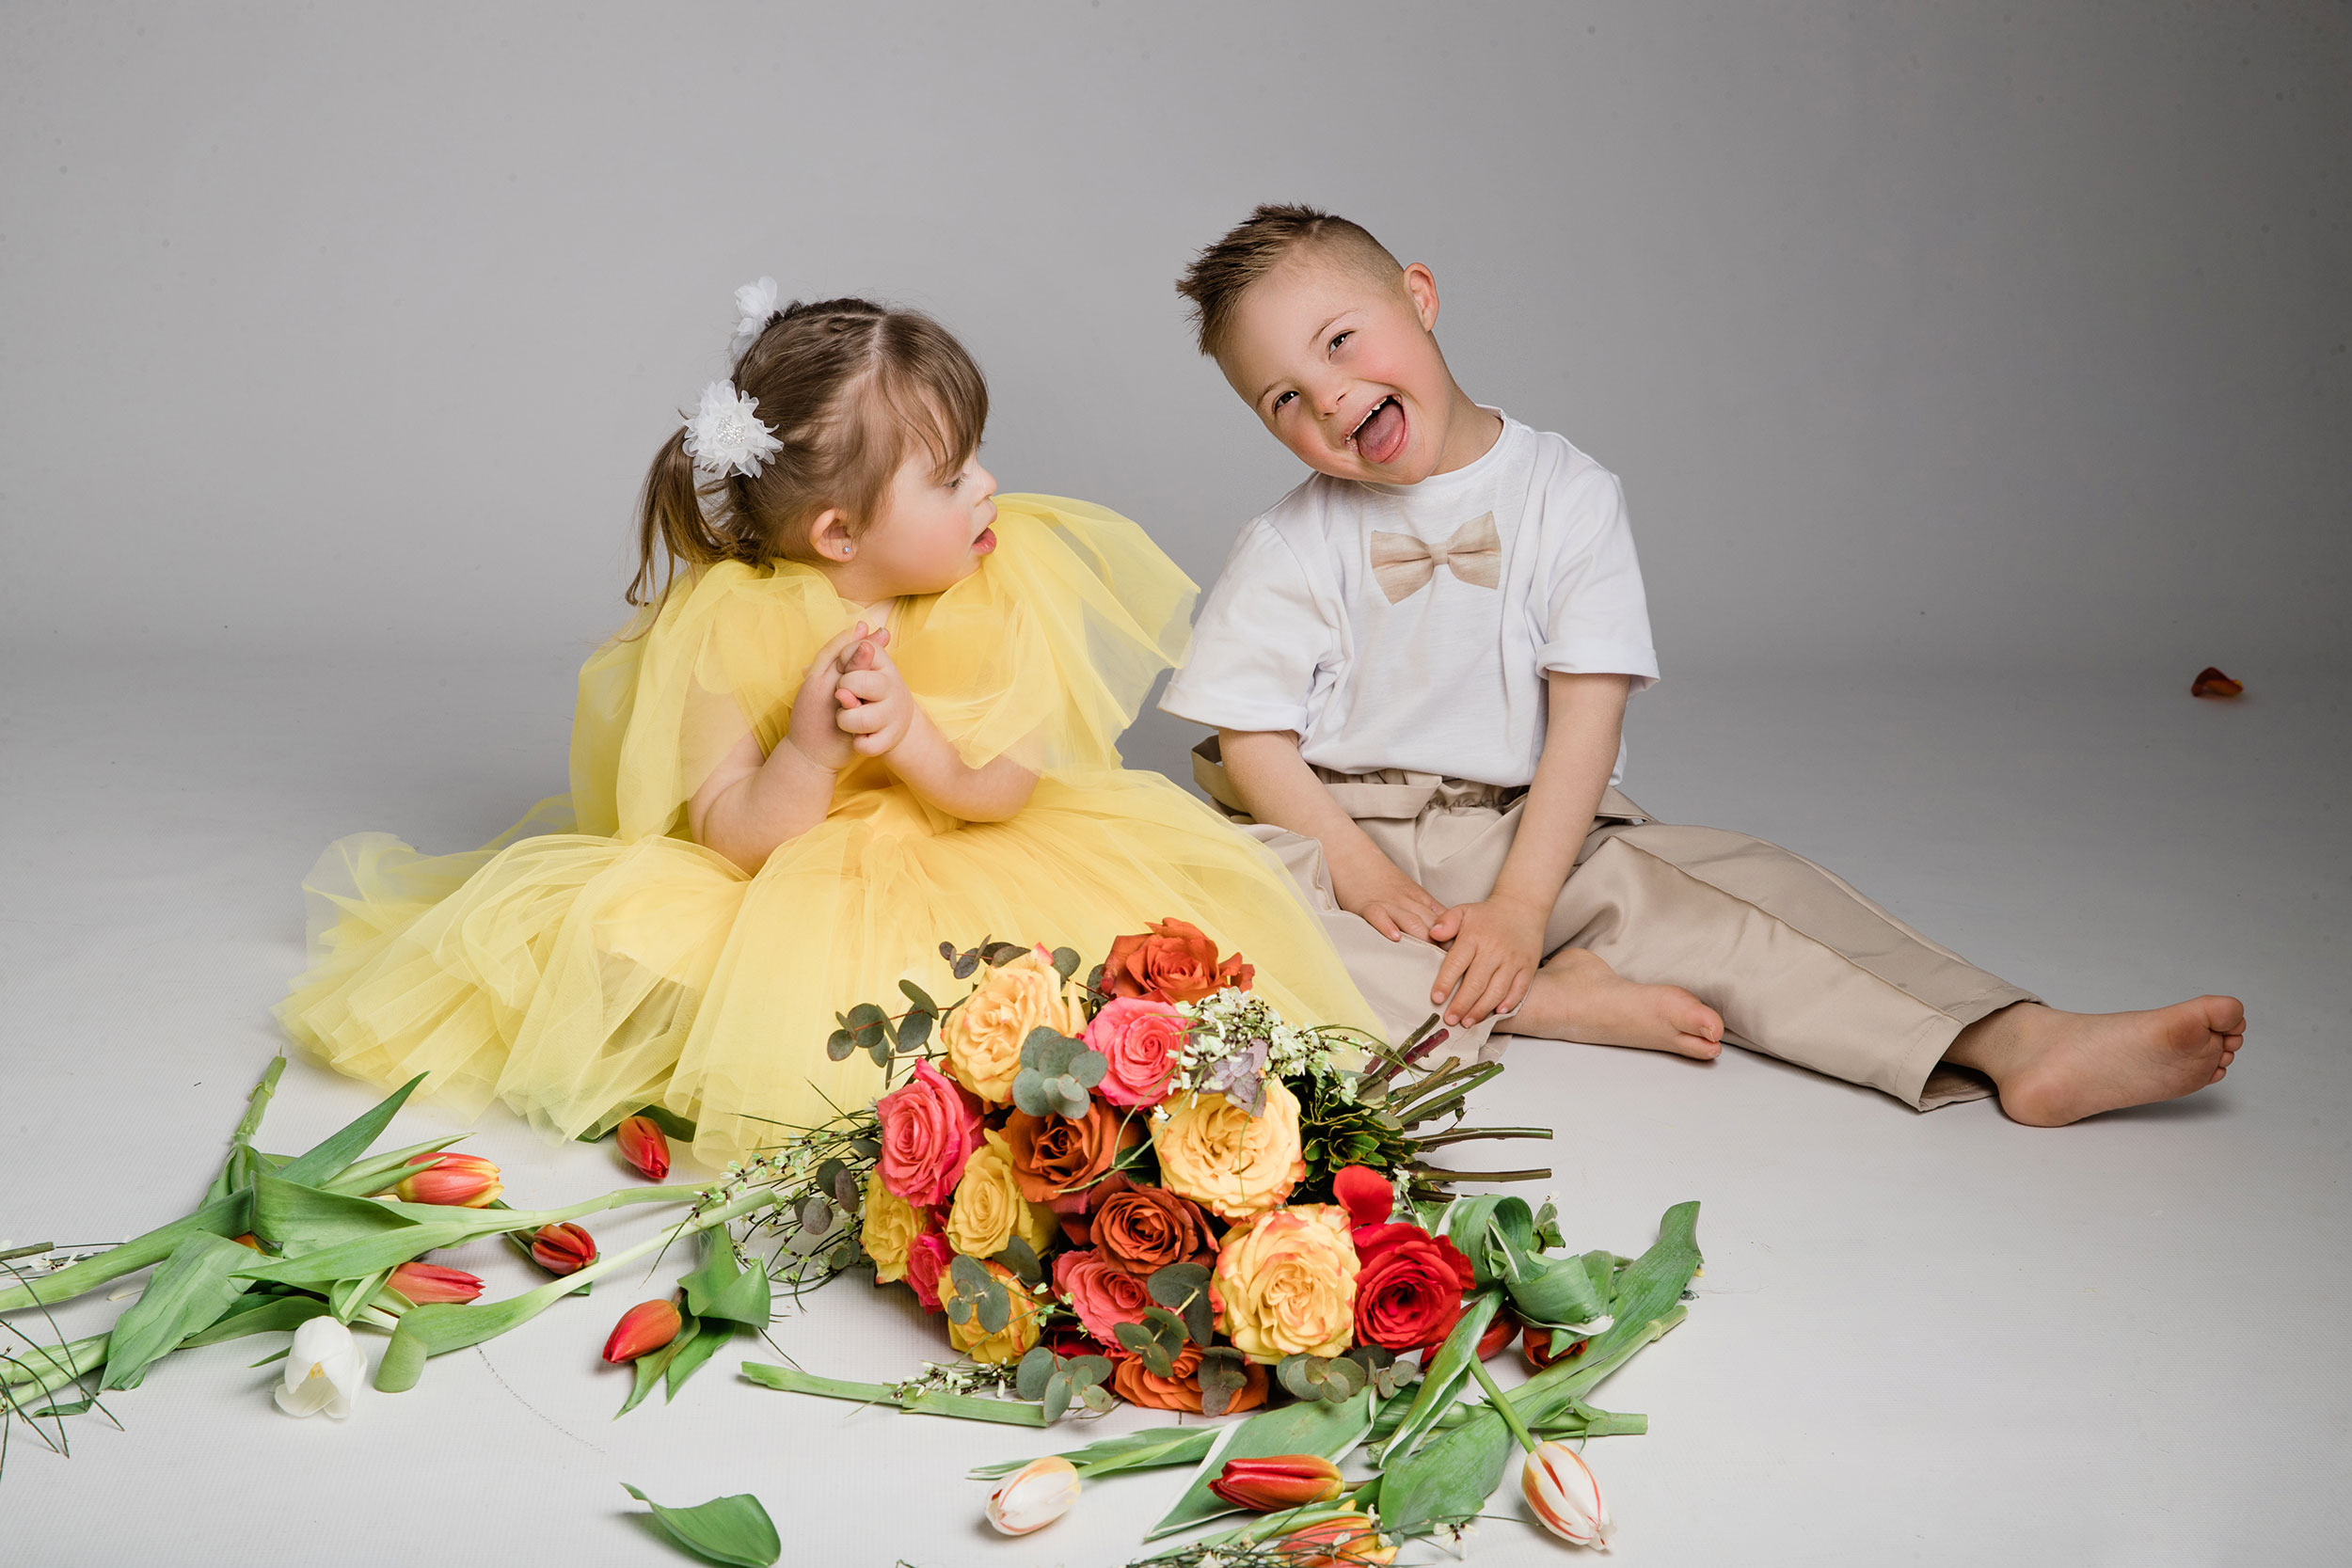 Studio filled with flowers for a photoshoot with kids